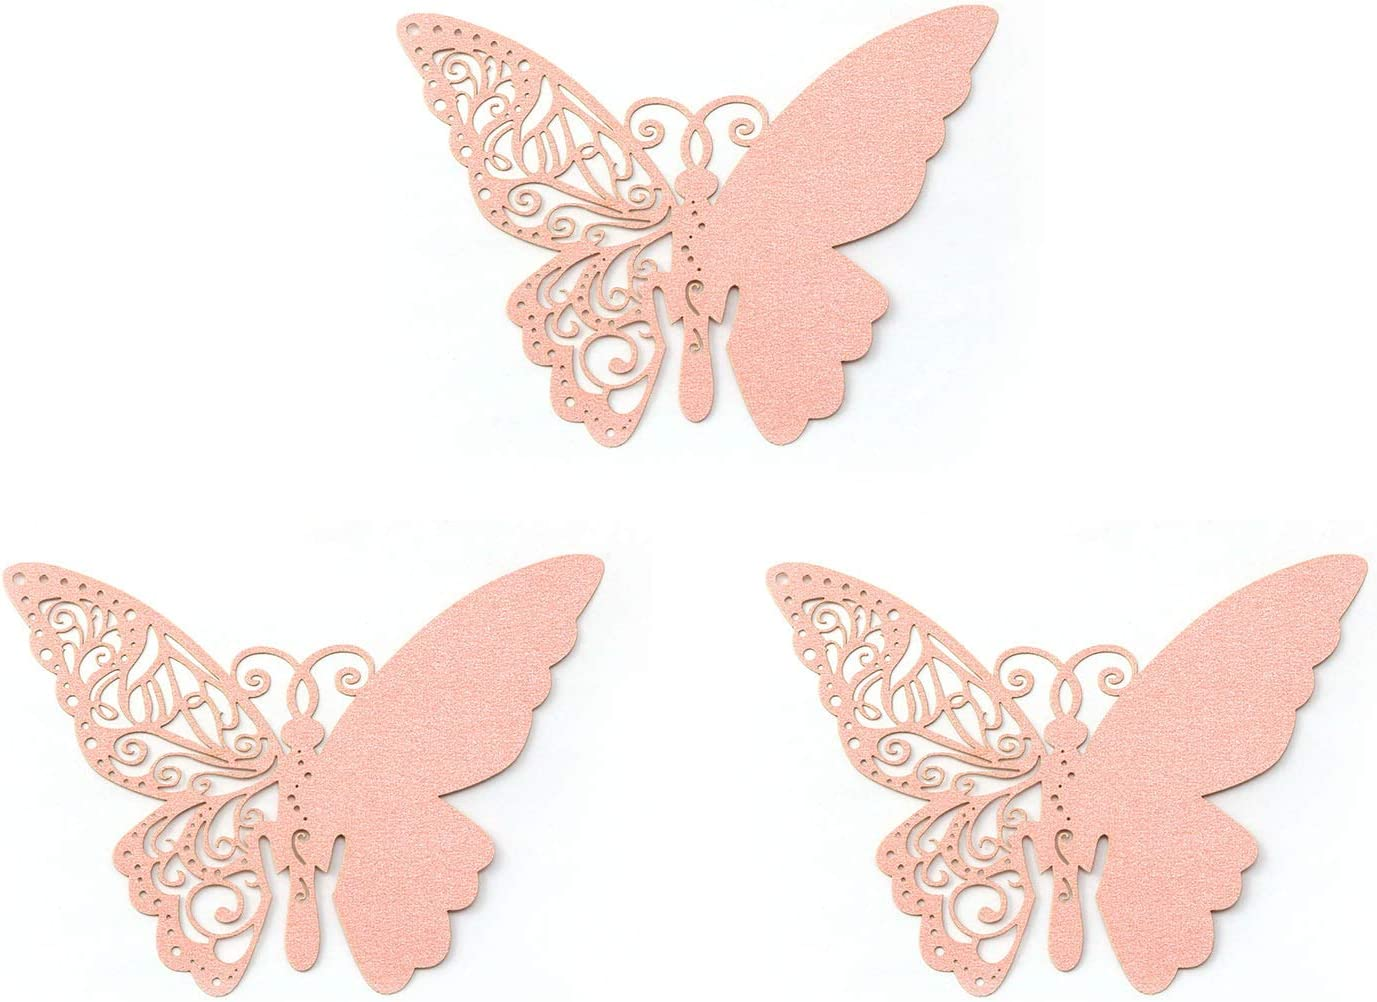 NX Garden 50pcs Butterfly Wedding Party Baptism Table Name Place Card/Escort Card/Cup Card/Wine Glass Card for Wedding Party Decoration, Pink